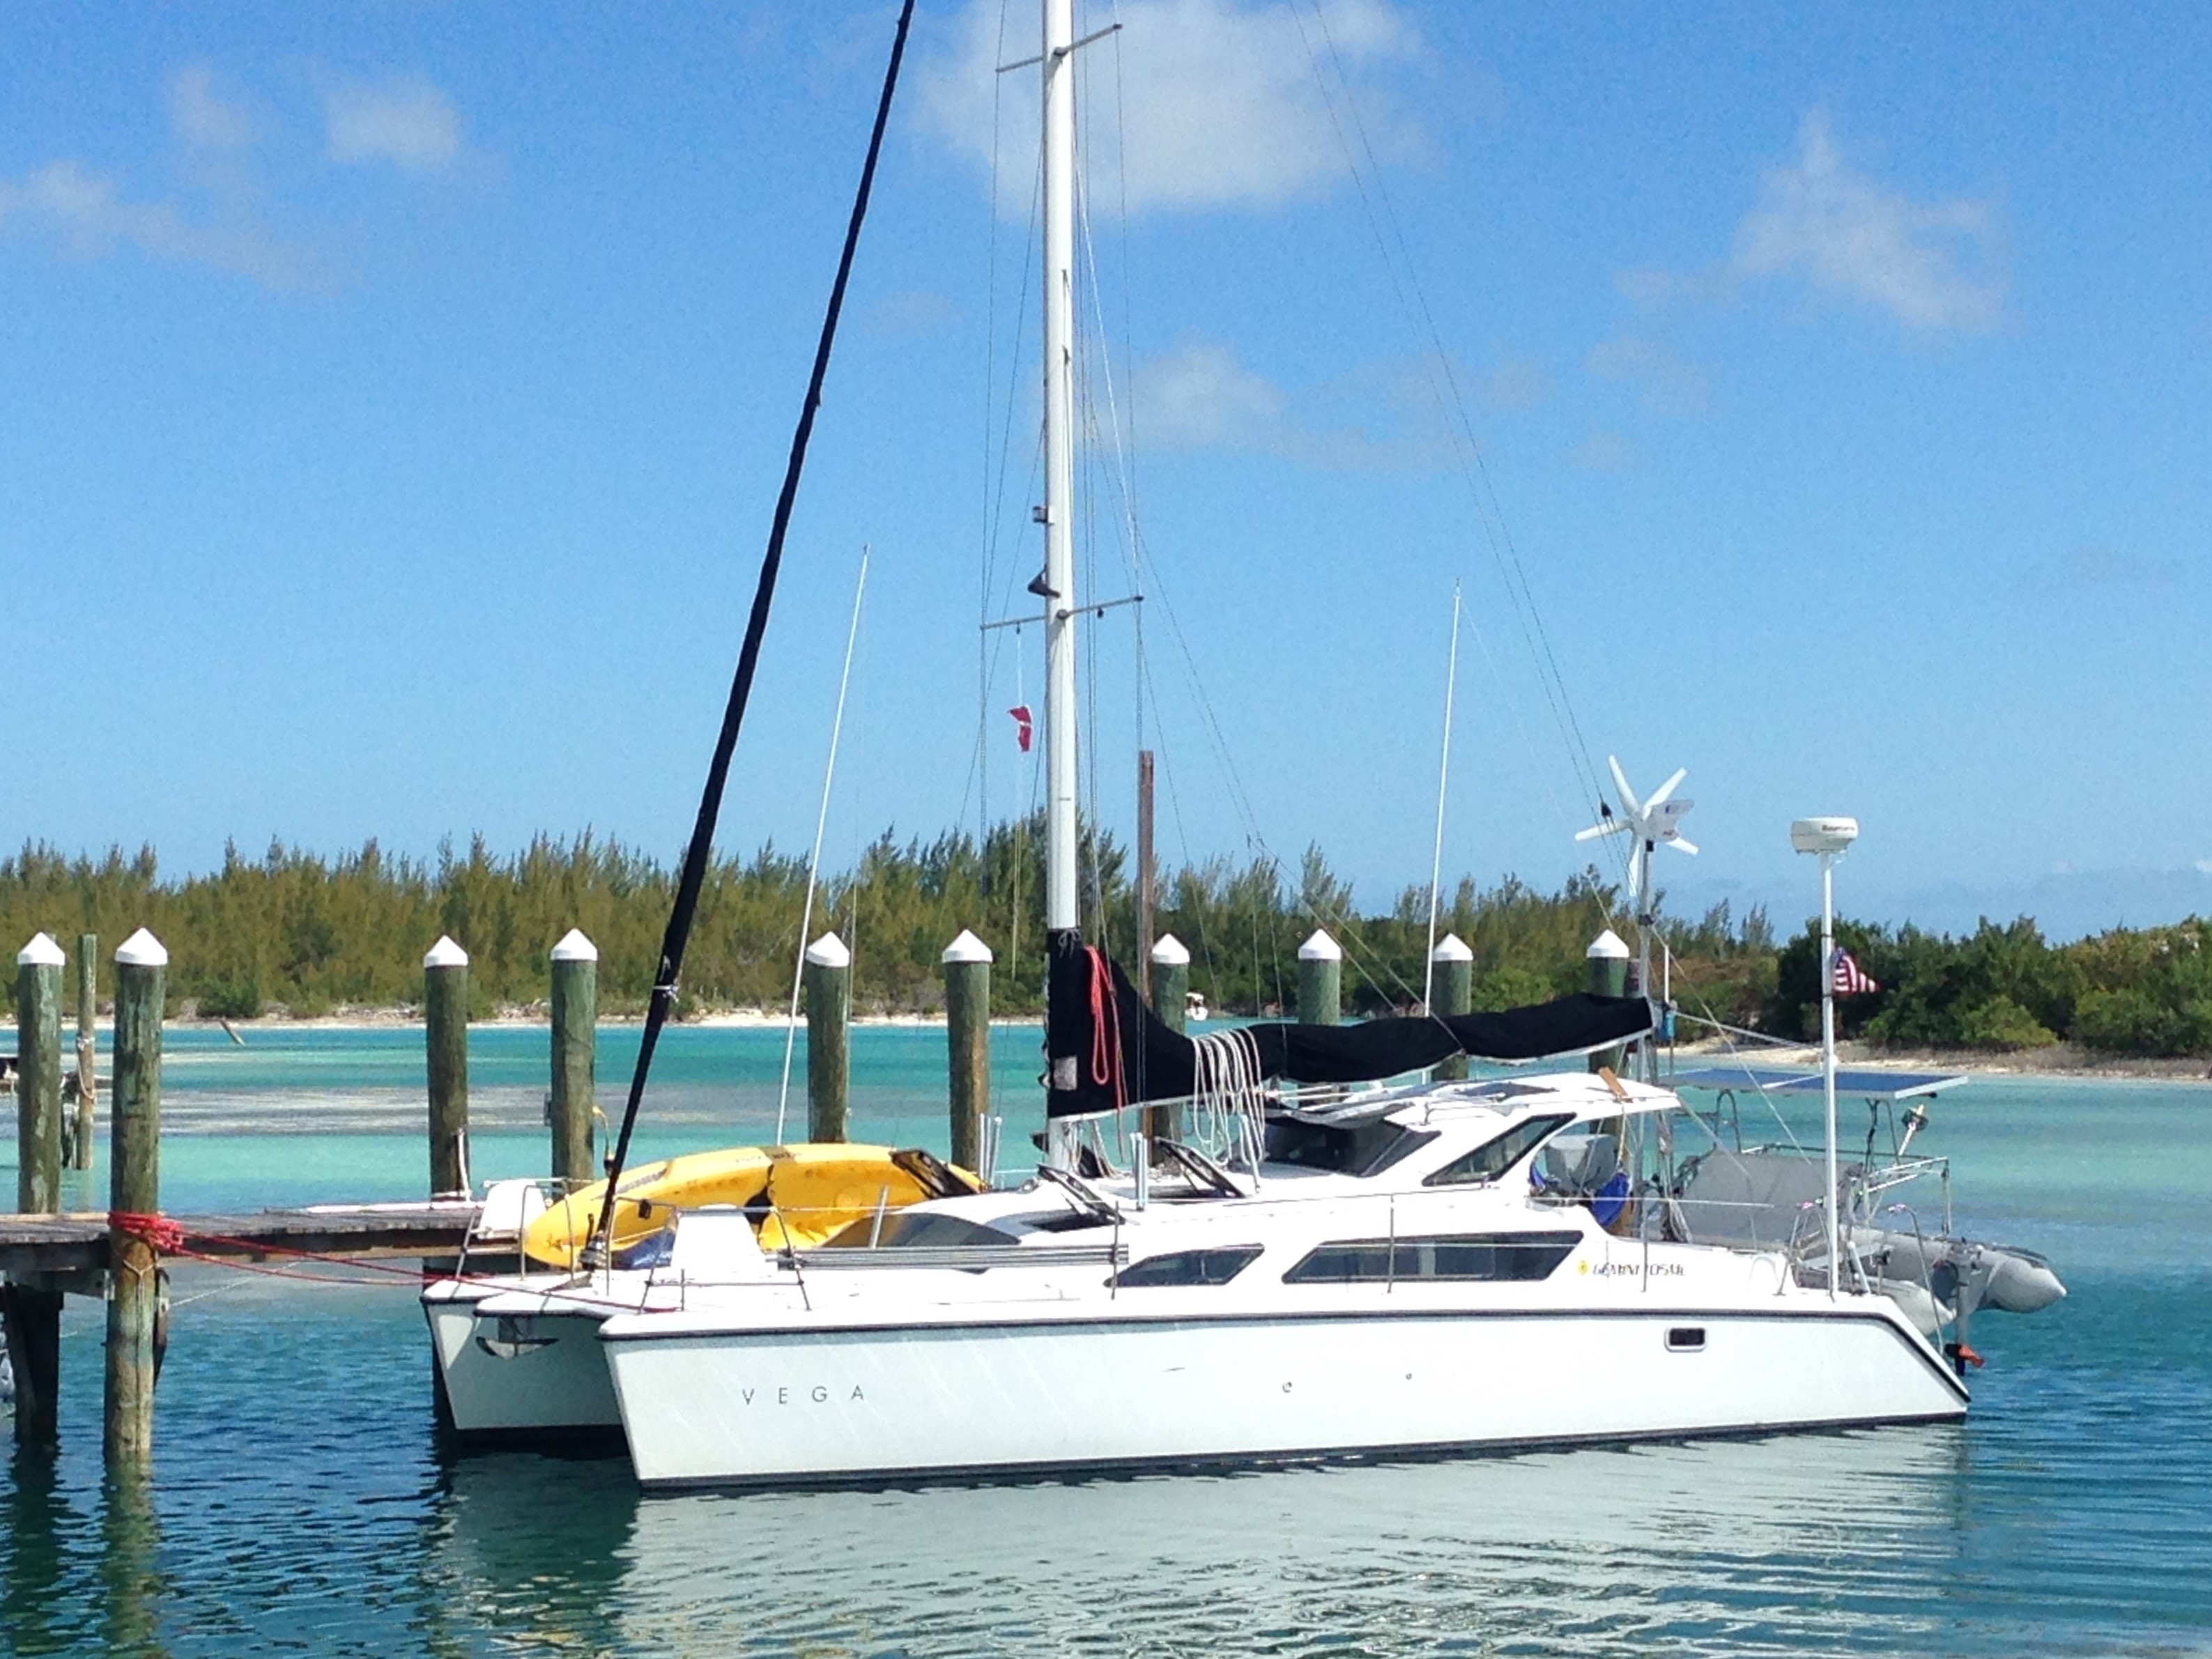 Catamaran for Sale Gemini 105Mc  in Titusville Florida (FL)  VEGA  Preowned Sail